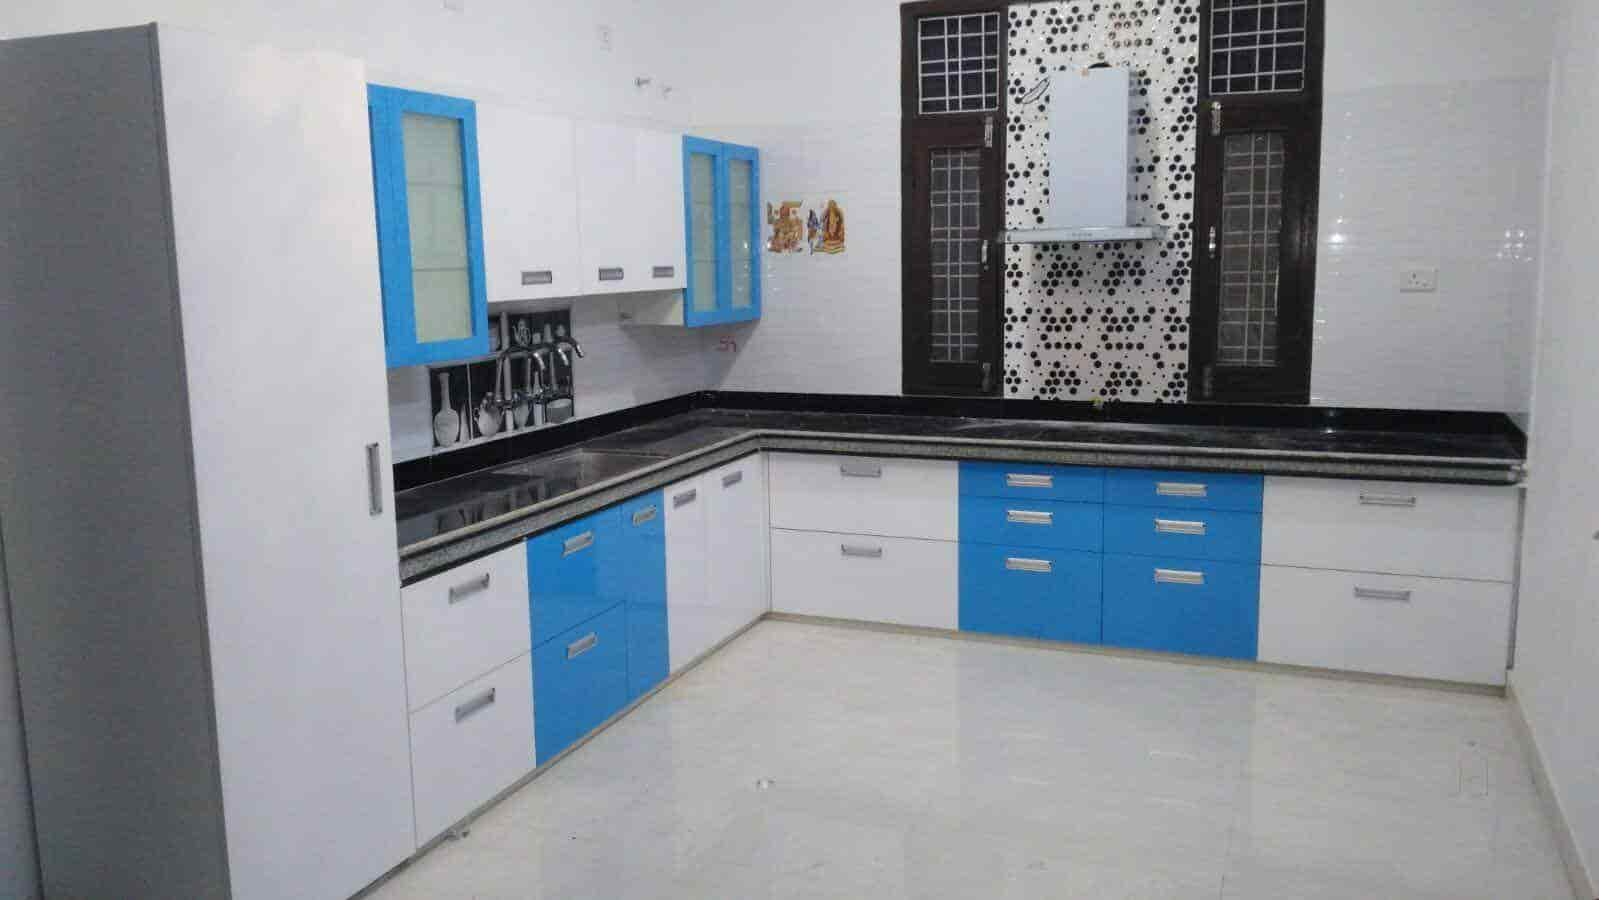 Jks Kitchen Interior Photos, Hadapsar, Pune- Pictures & Images ...